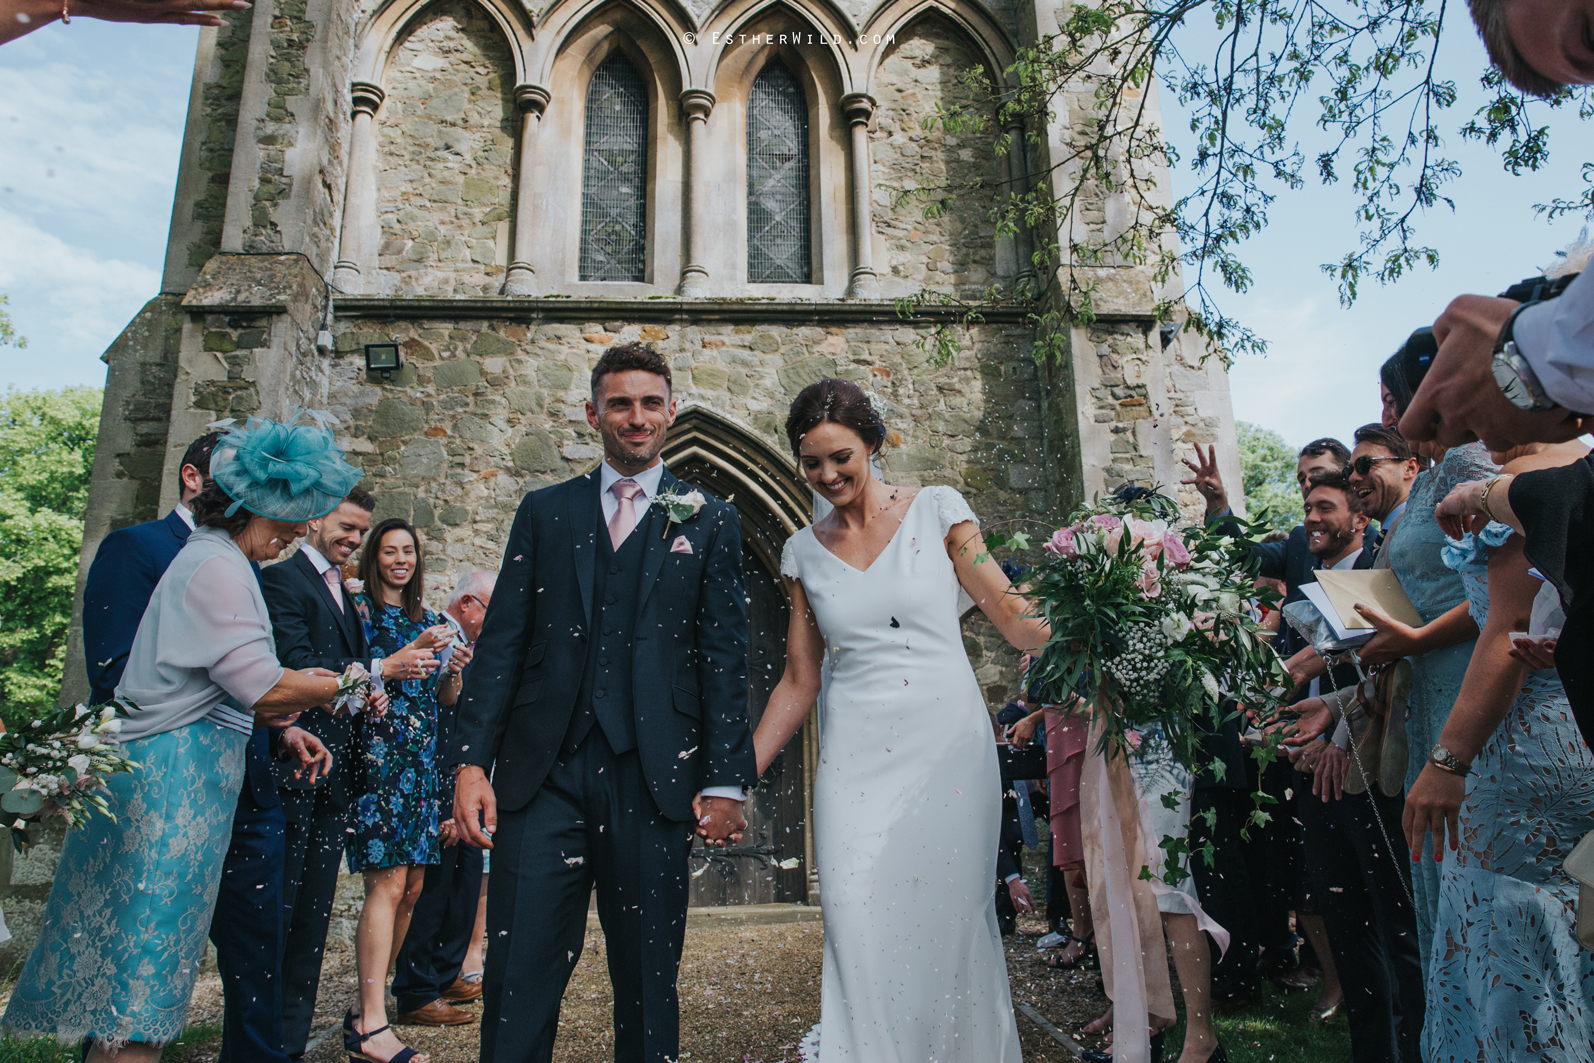 Wootton_Wedding_Copyright_Esther_Wild_Photographer_IMG_1221.jpg